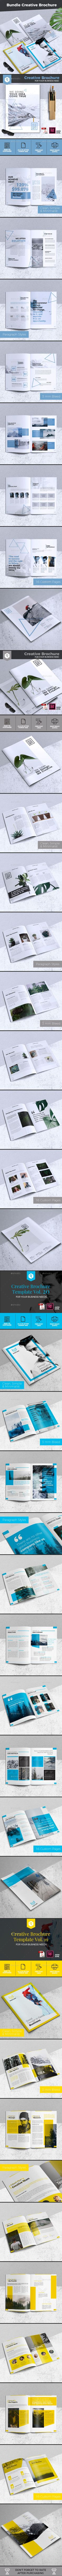 Bundle Creative Brochure Vol 01 - Corporate Brochures Download here : https://graphicriver.net/item/bundle-creative-brochure-vol-01/20644458?s_rank=89&ref=Al-fatih #brochure #brochure design #brochure template  #design #premium design #bifold #trifold